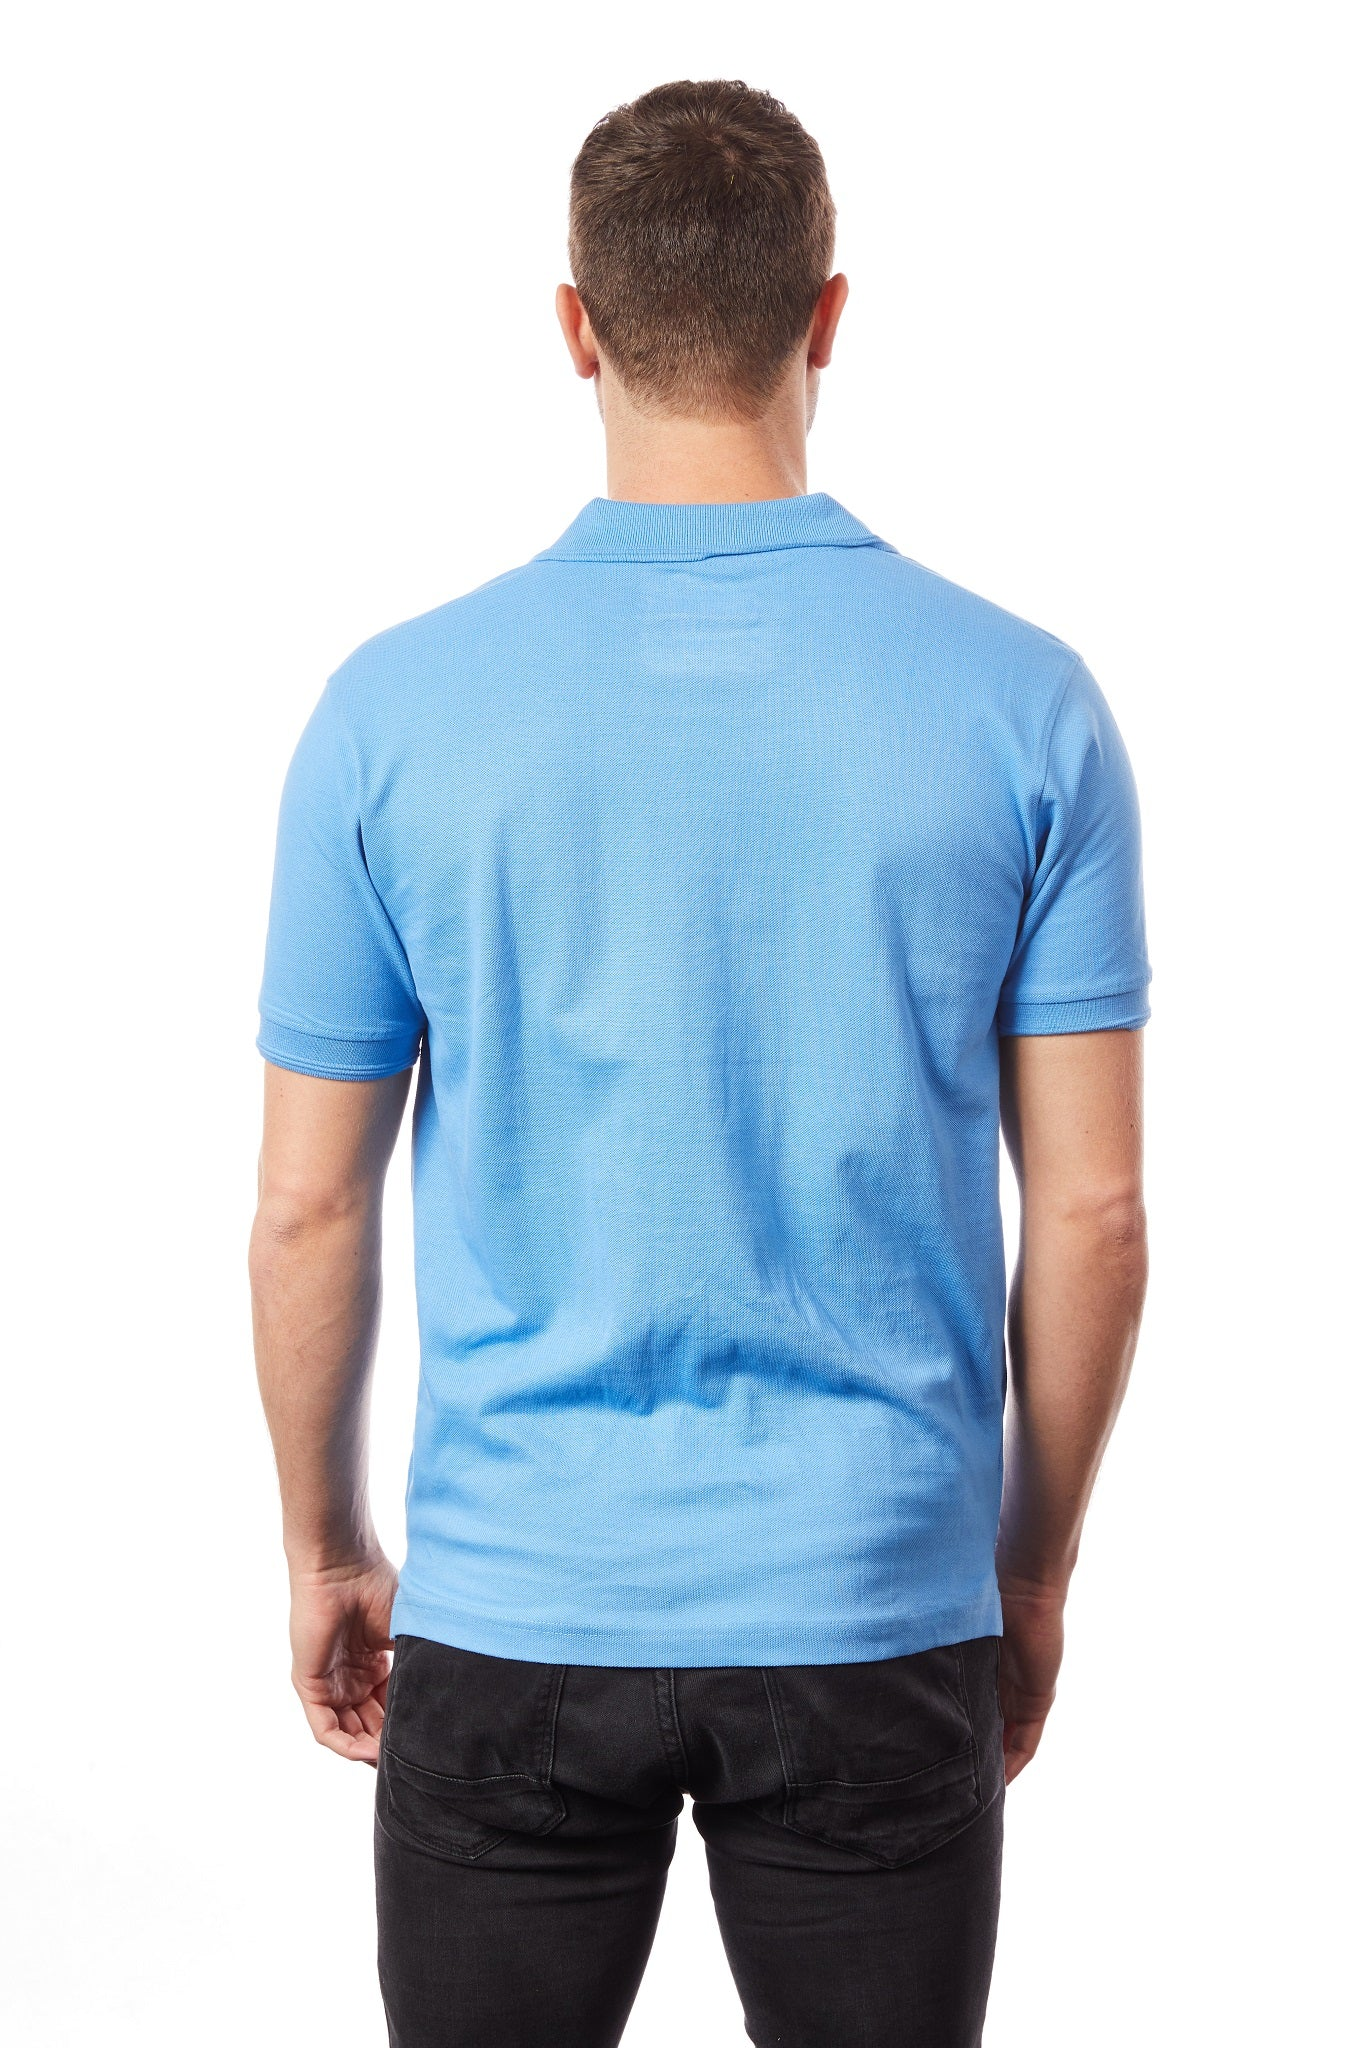 Tipsy Koala Men's Light Blue Polo